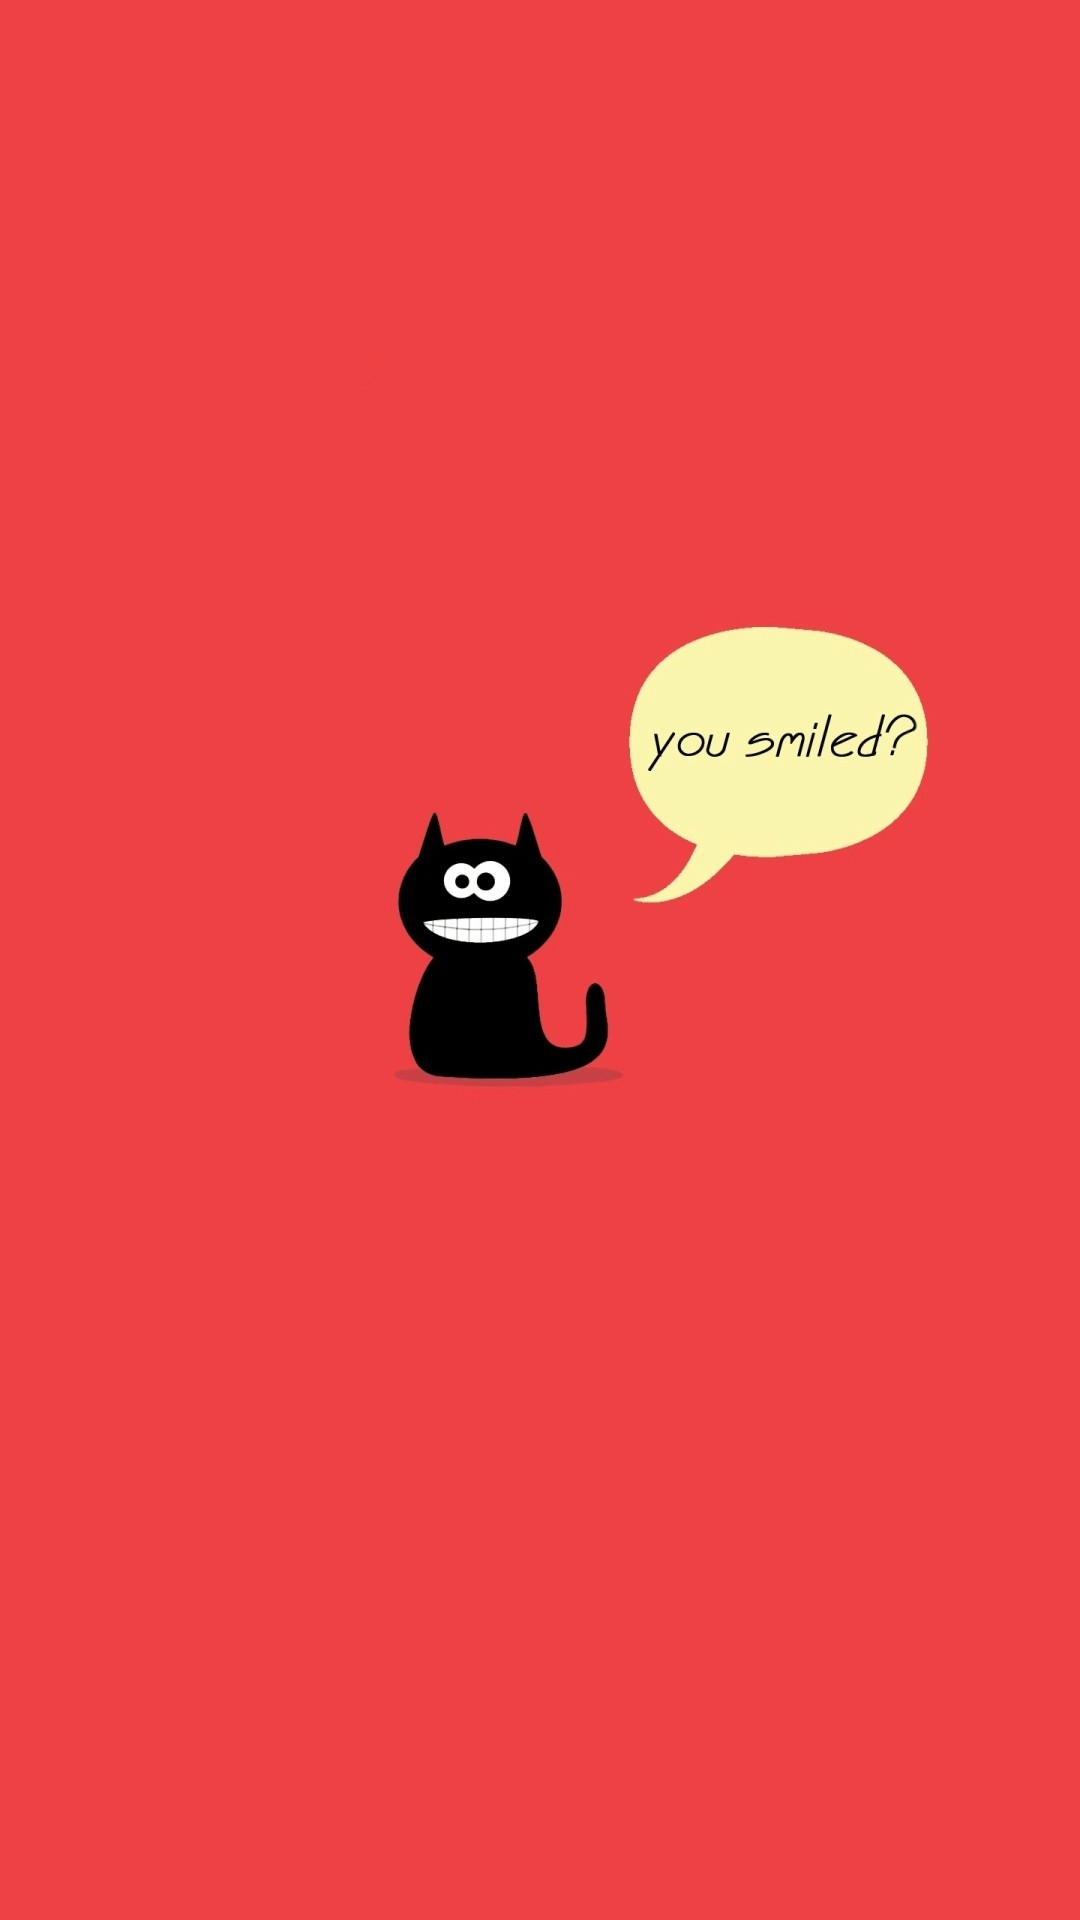 Black Cute Smile Cat Tap To See More Funny Cartoon IPhone